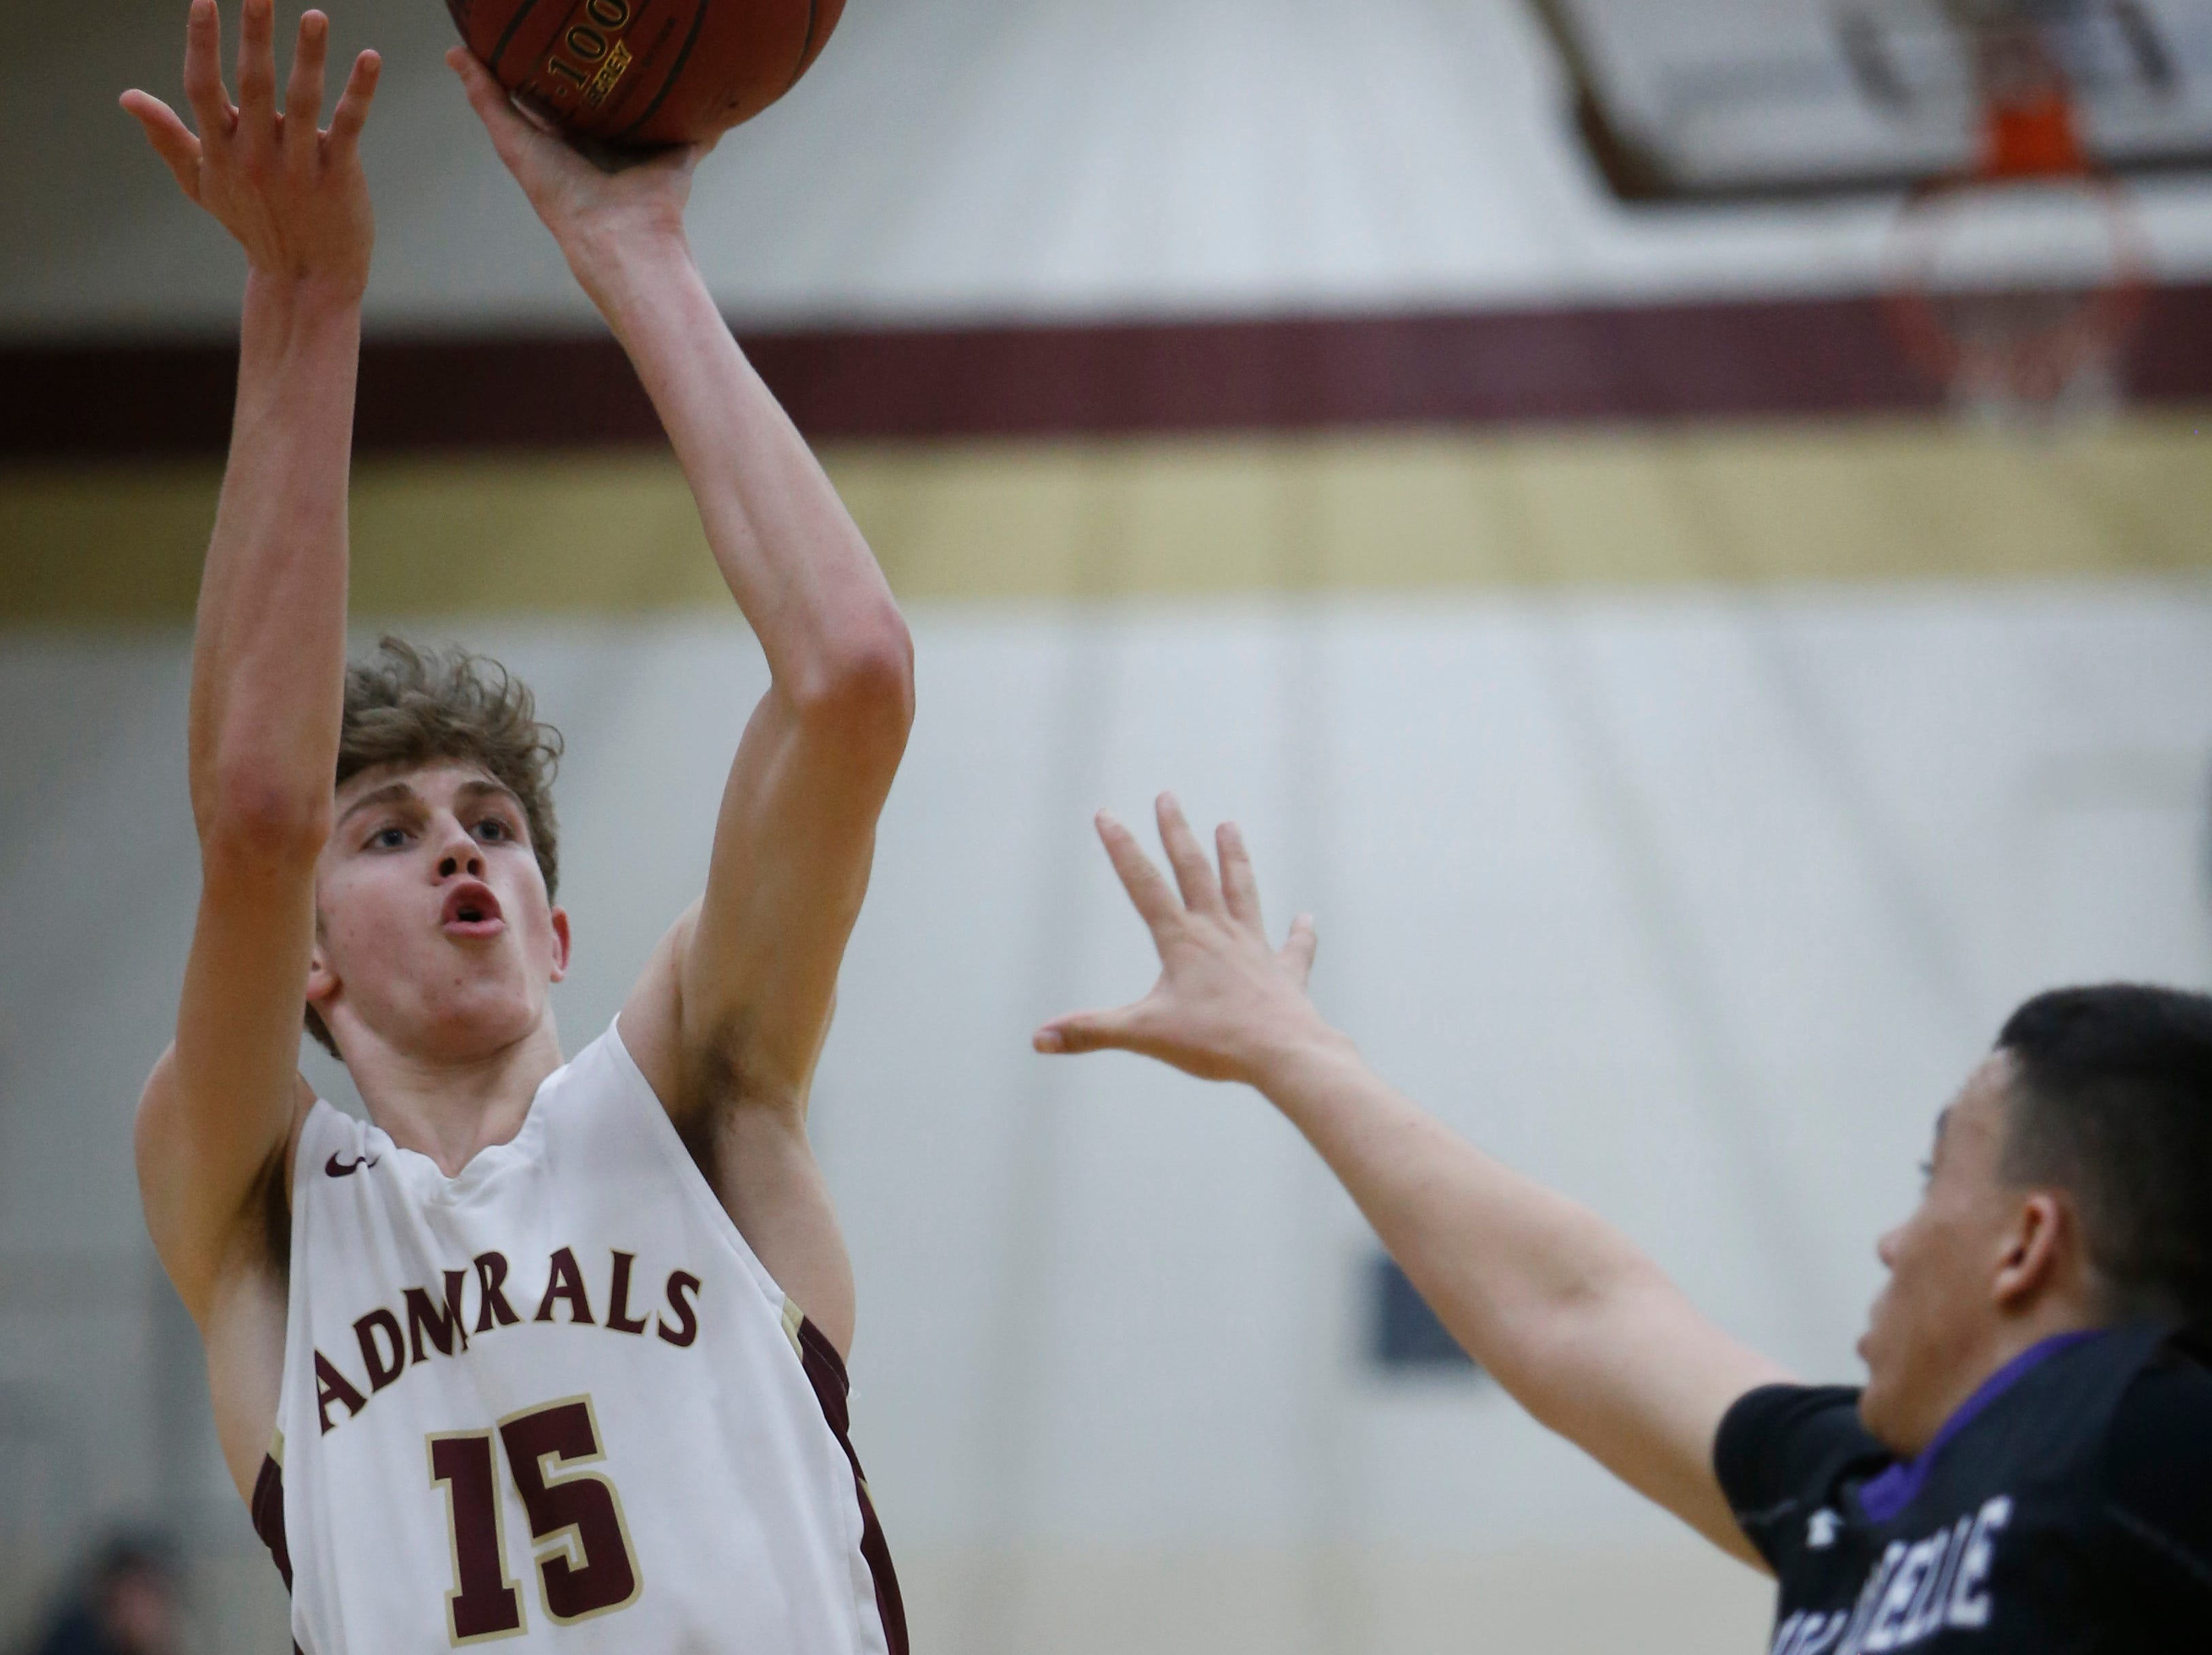 Arlington's Jake Weinstein takes a jump shot as New Rochelle's Prakash Ketterhagan tries to block him during Thursday's game in Freedom Plains on February 21, 2019.